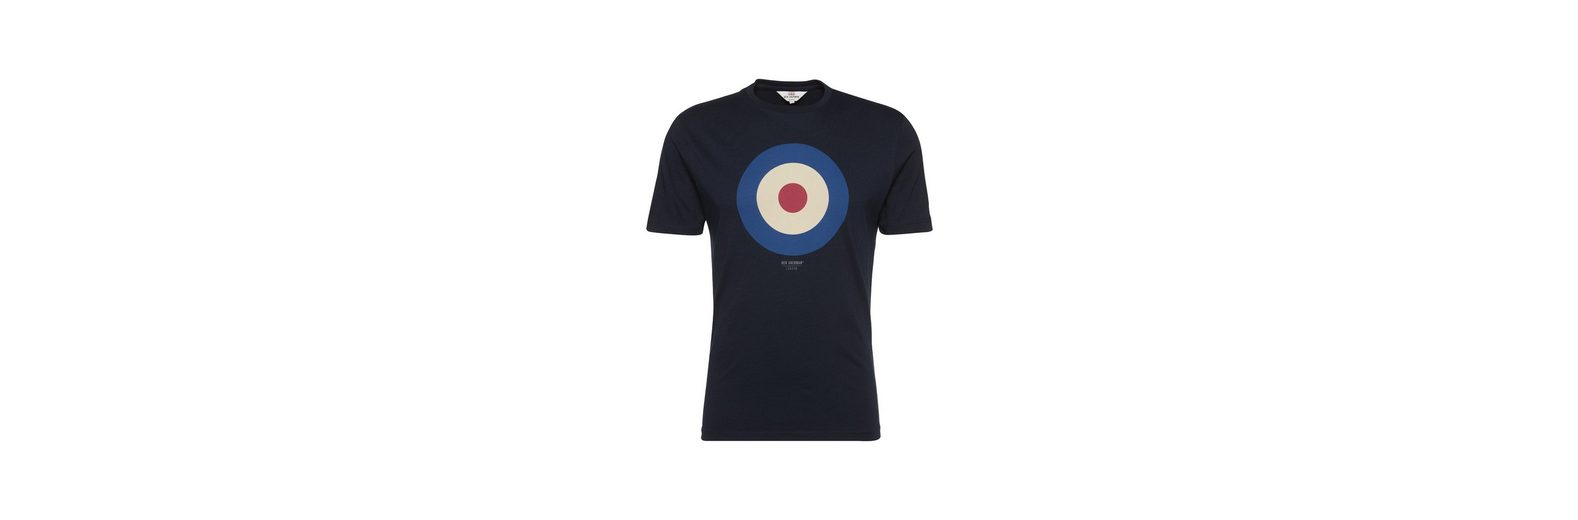 Ben Sherman Print-Shirt THE TARGET TEE